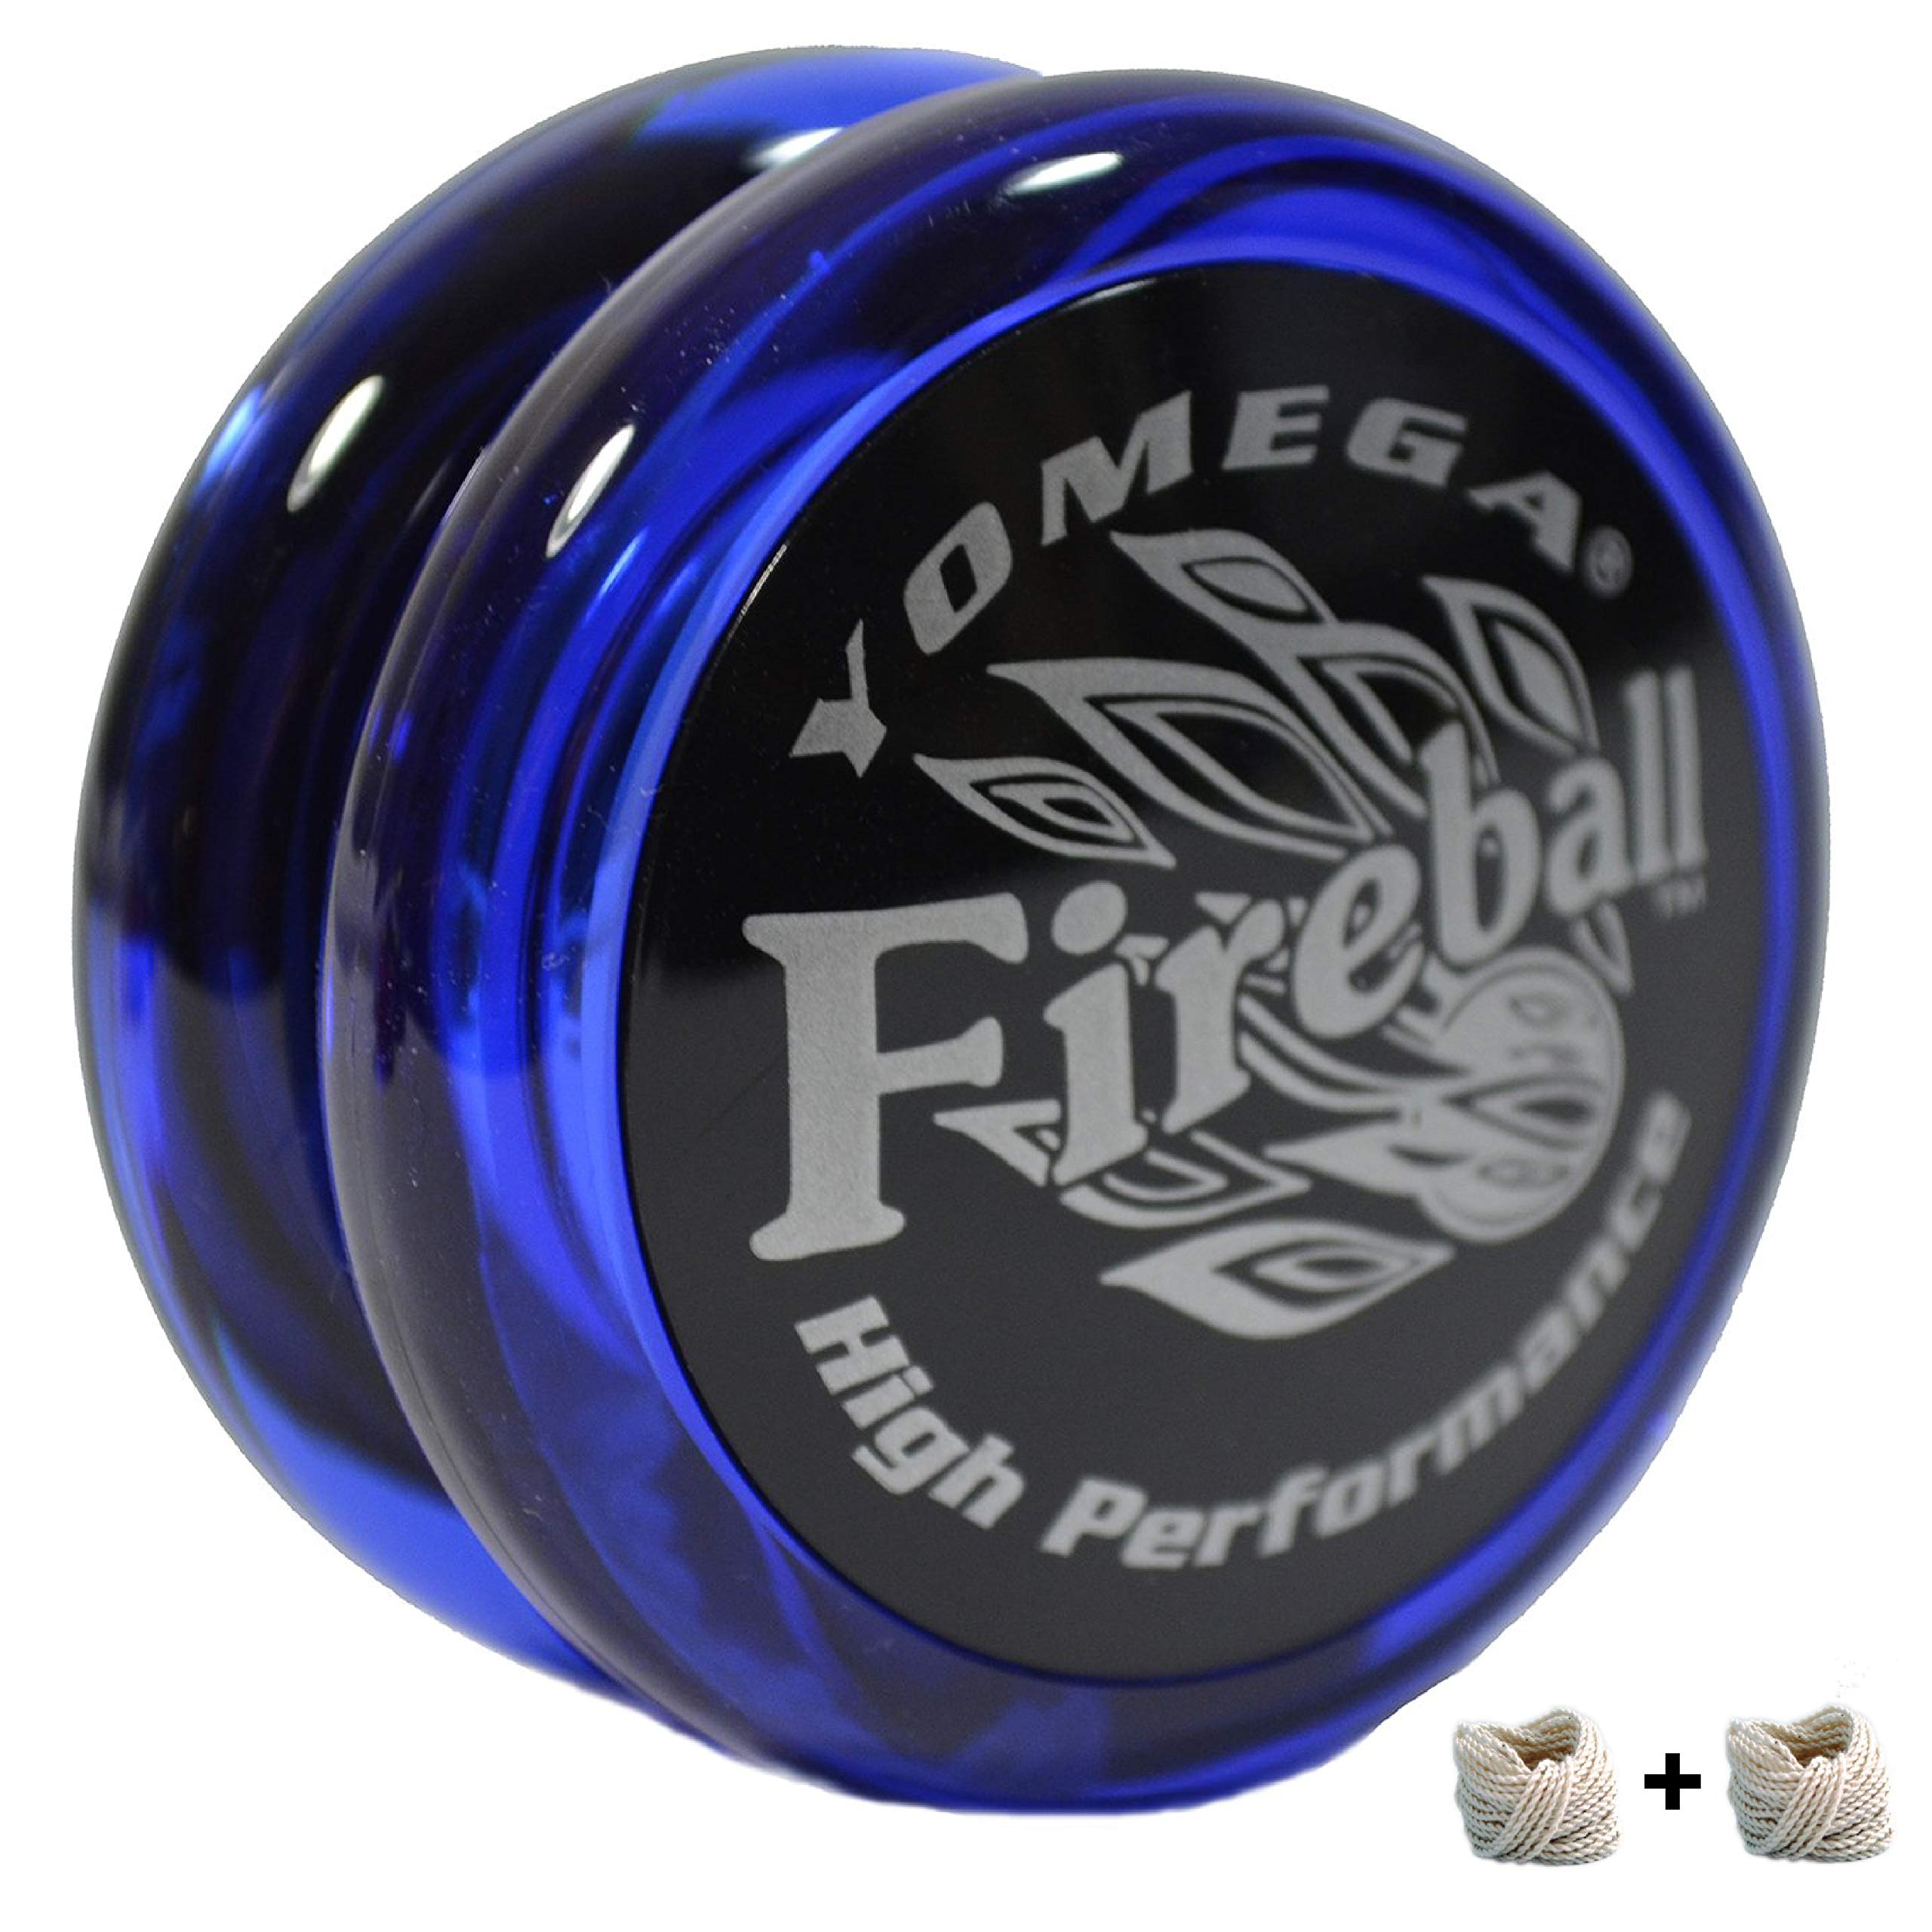 Yomega Fireball - Professional Responsive Transaxle Yoyo, Great For Kids And Beginners To Perform Like Pros + Extra 2 Strings & 3 Month Warranty (Dark Blue)